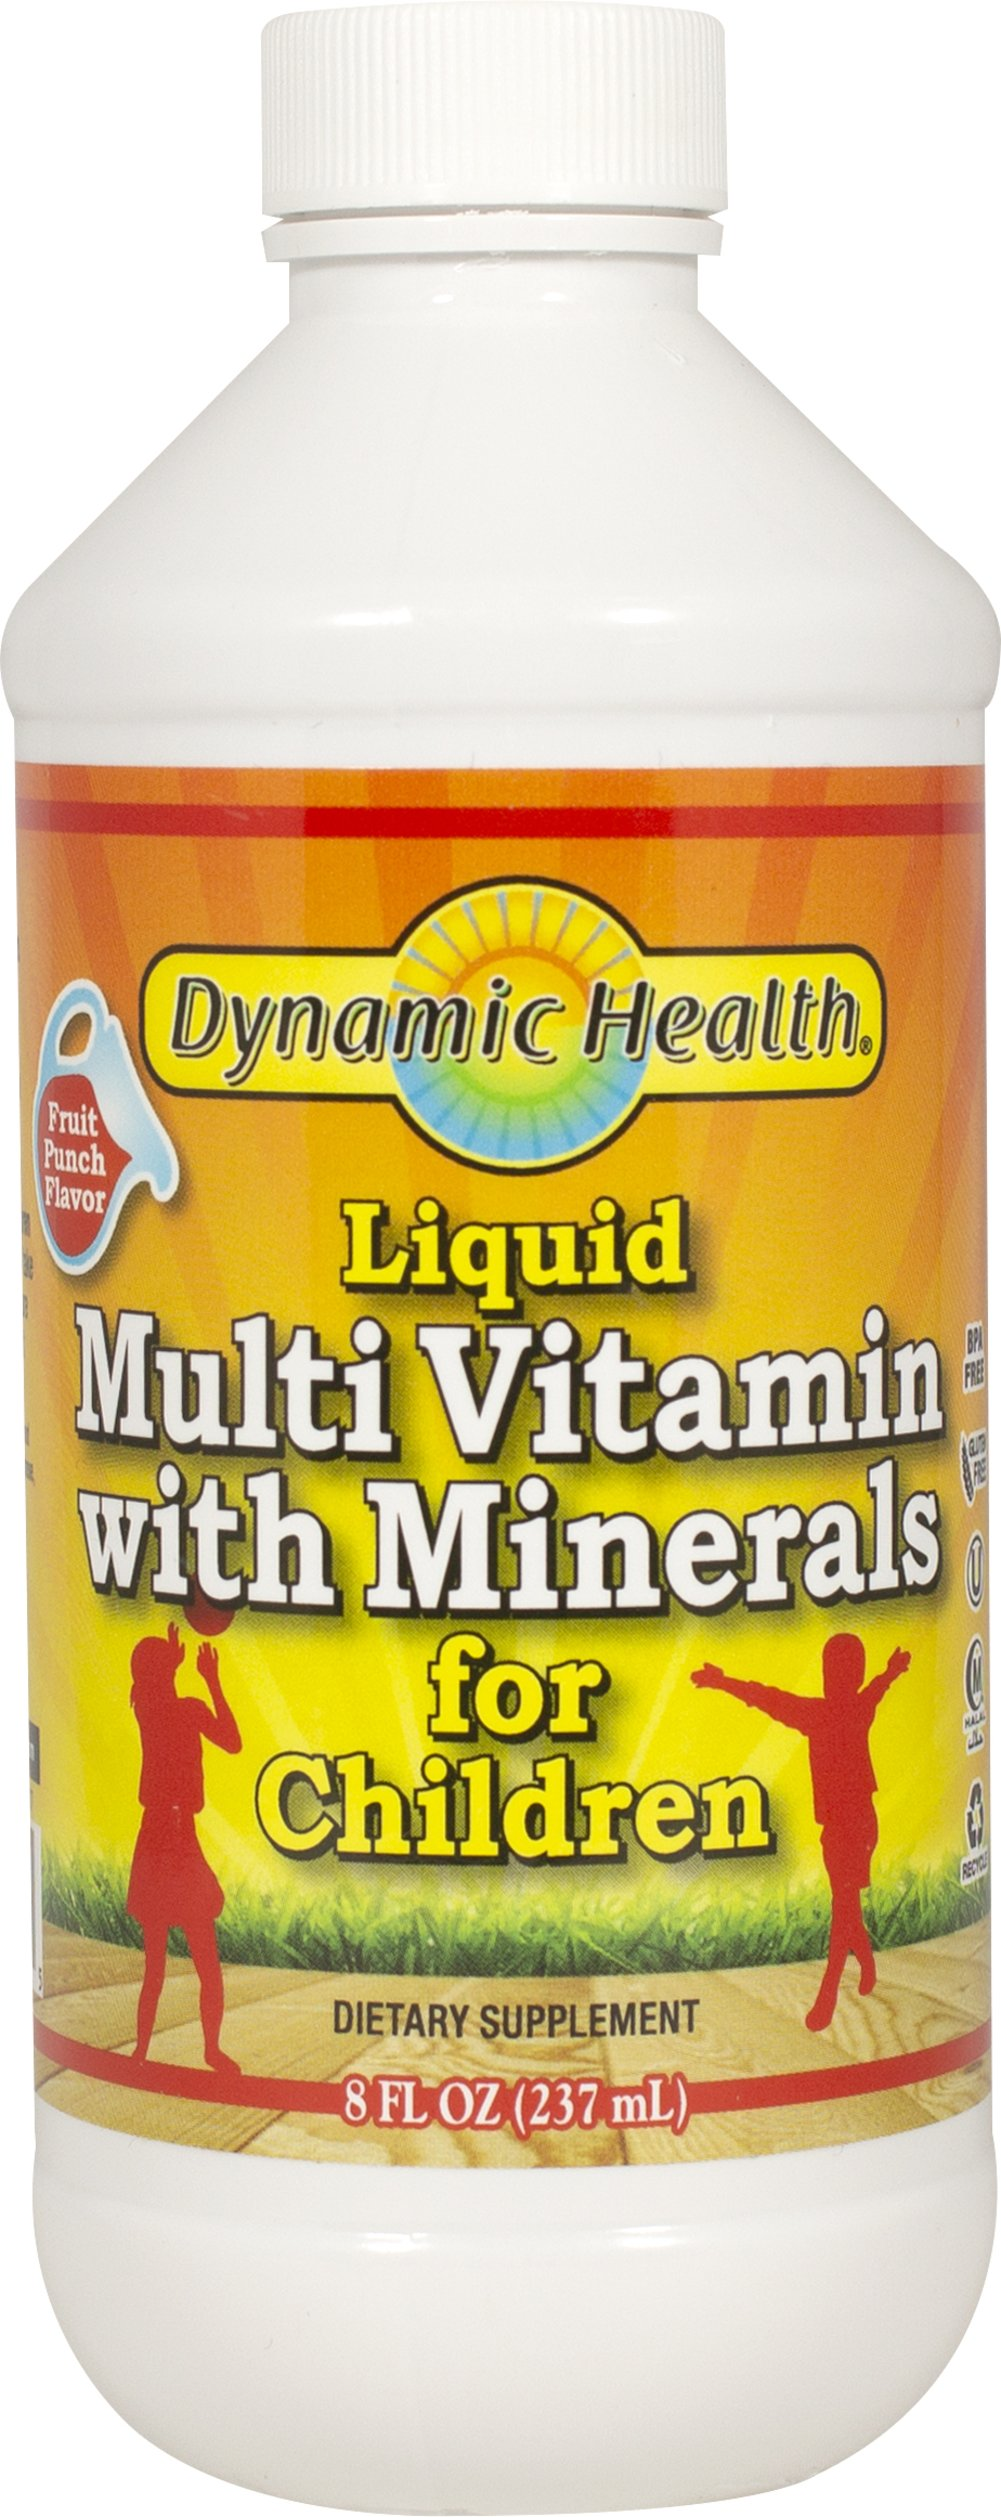 Children's Liquid Multivitamins & Minerals  8 fl oz Liquid